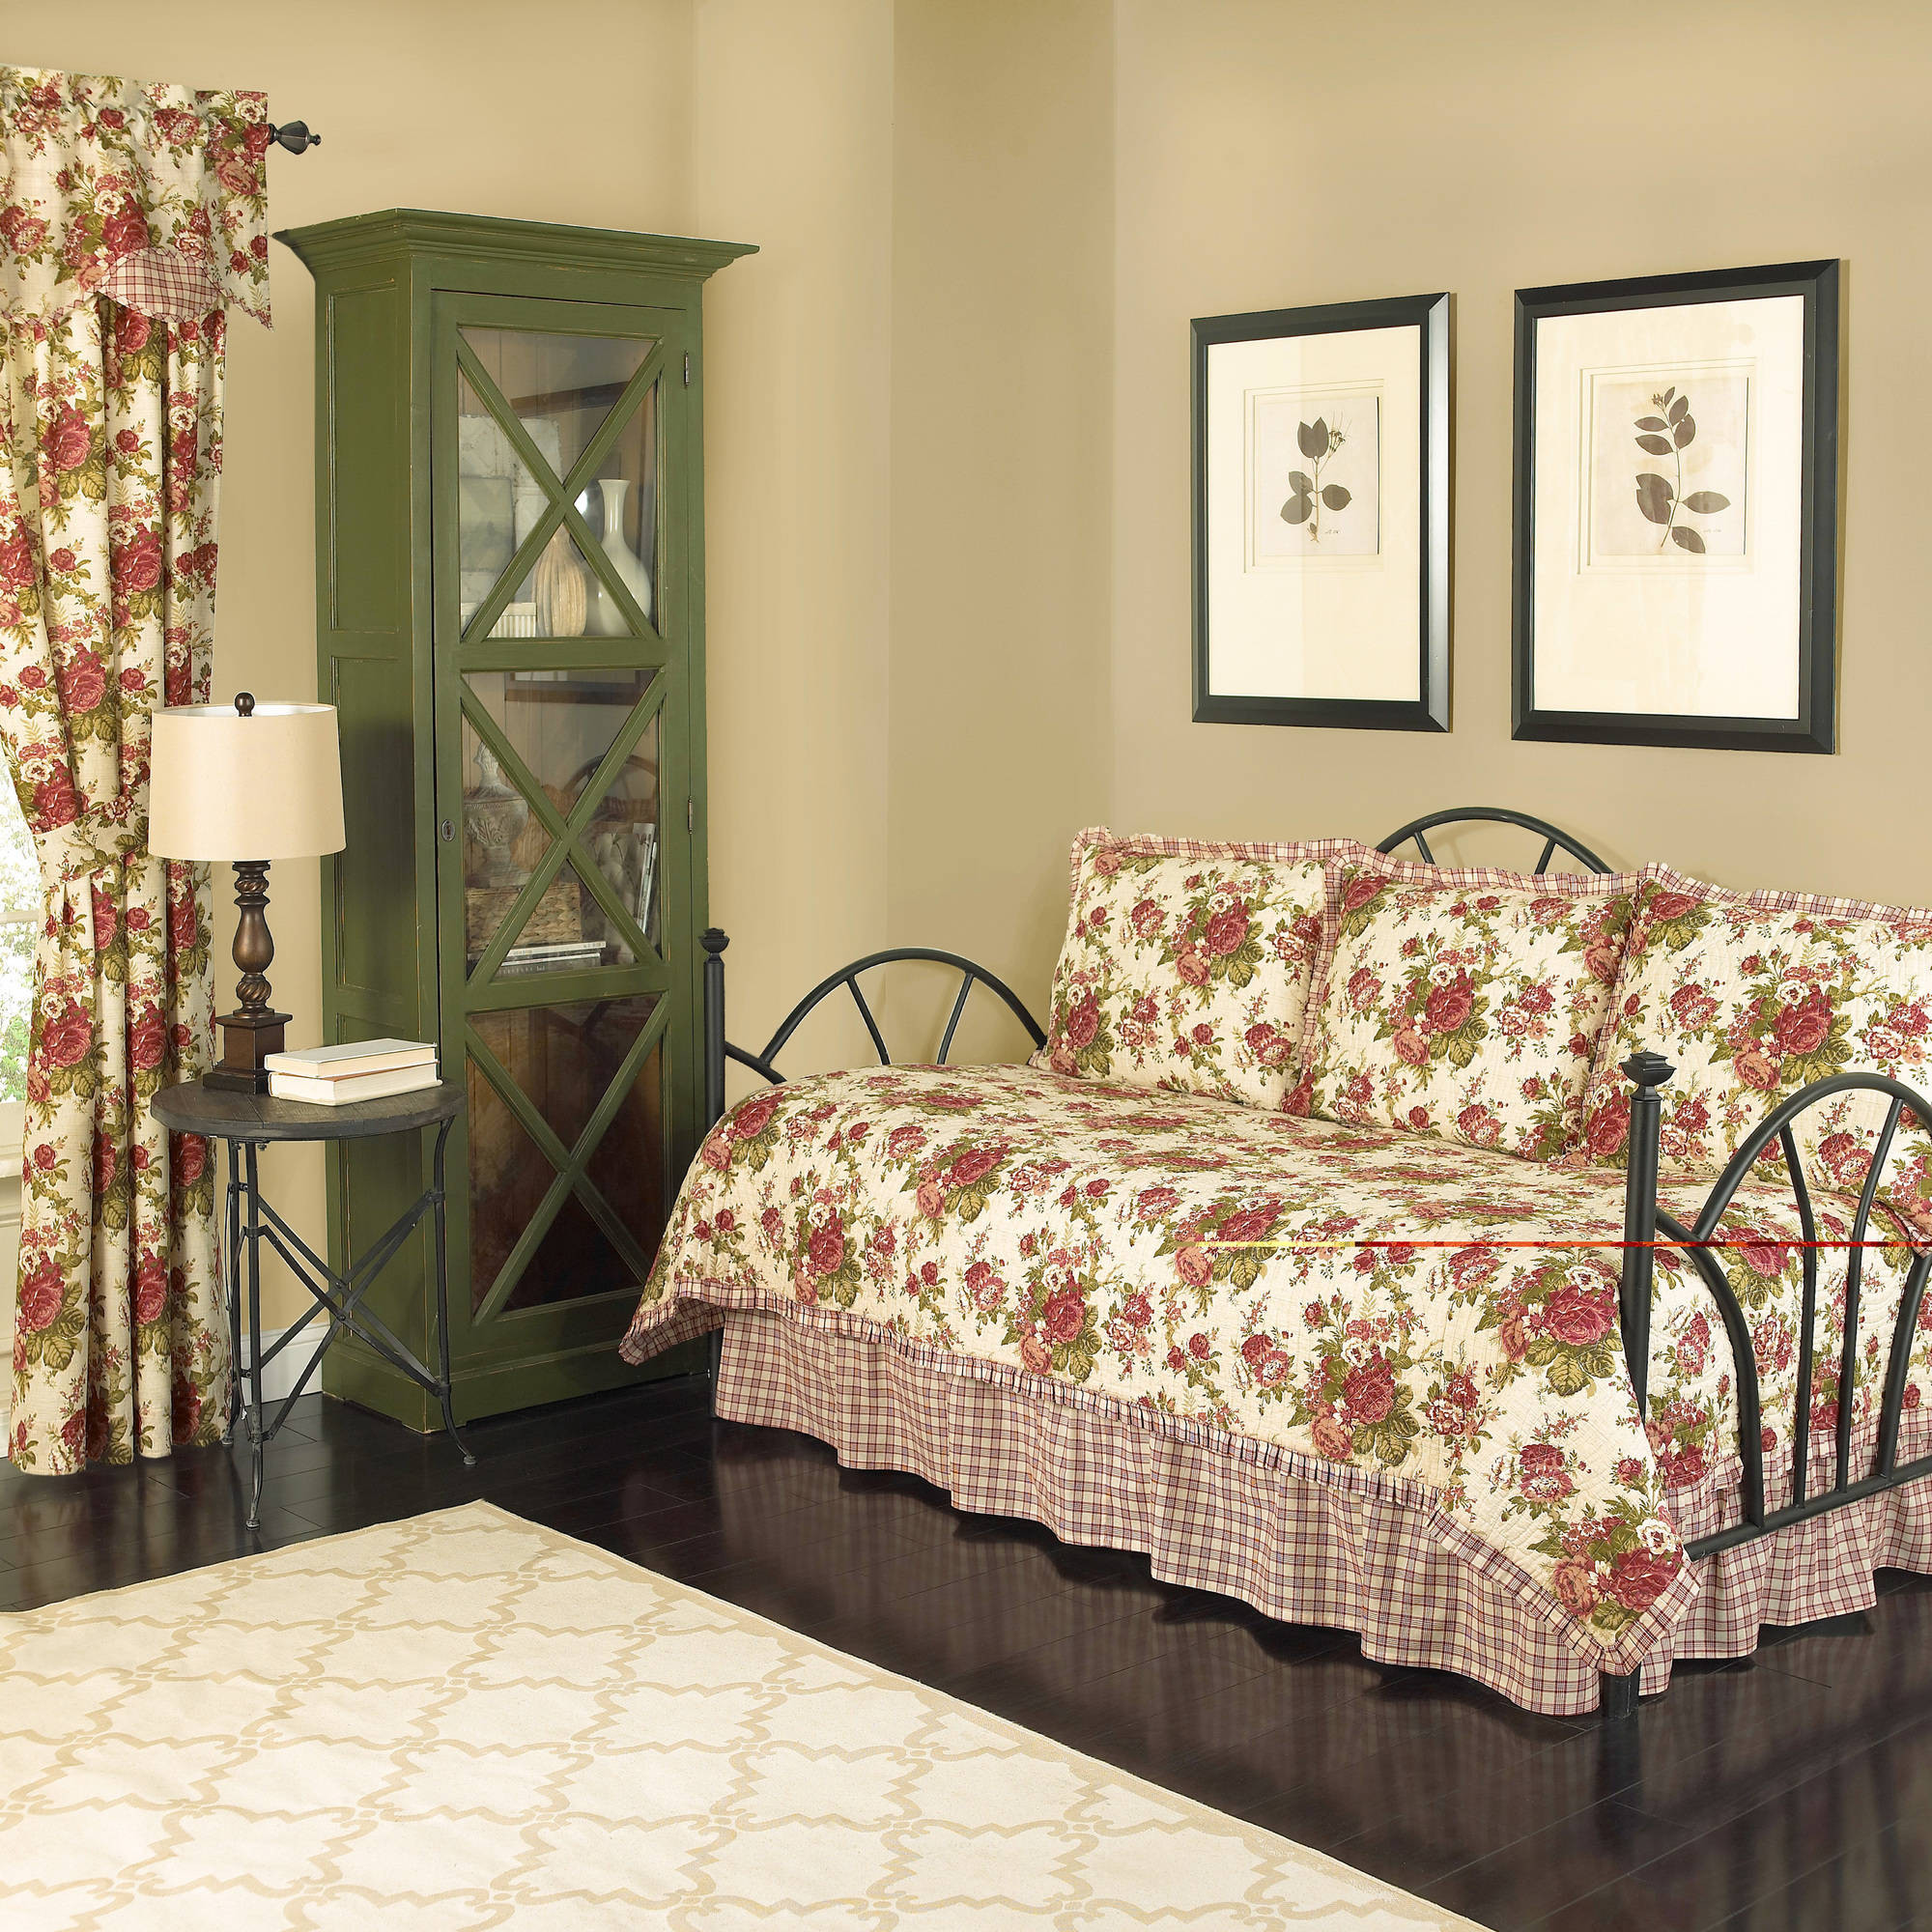 Waverly Norfolk Reversible Quilt Daybed Collection, 5-Piece